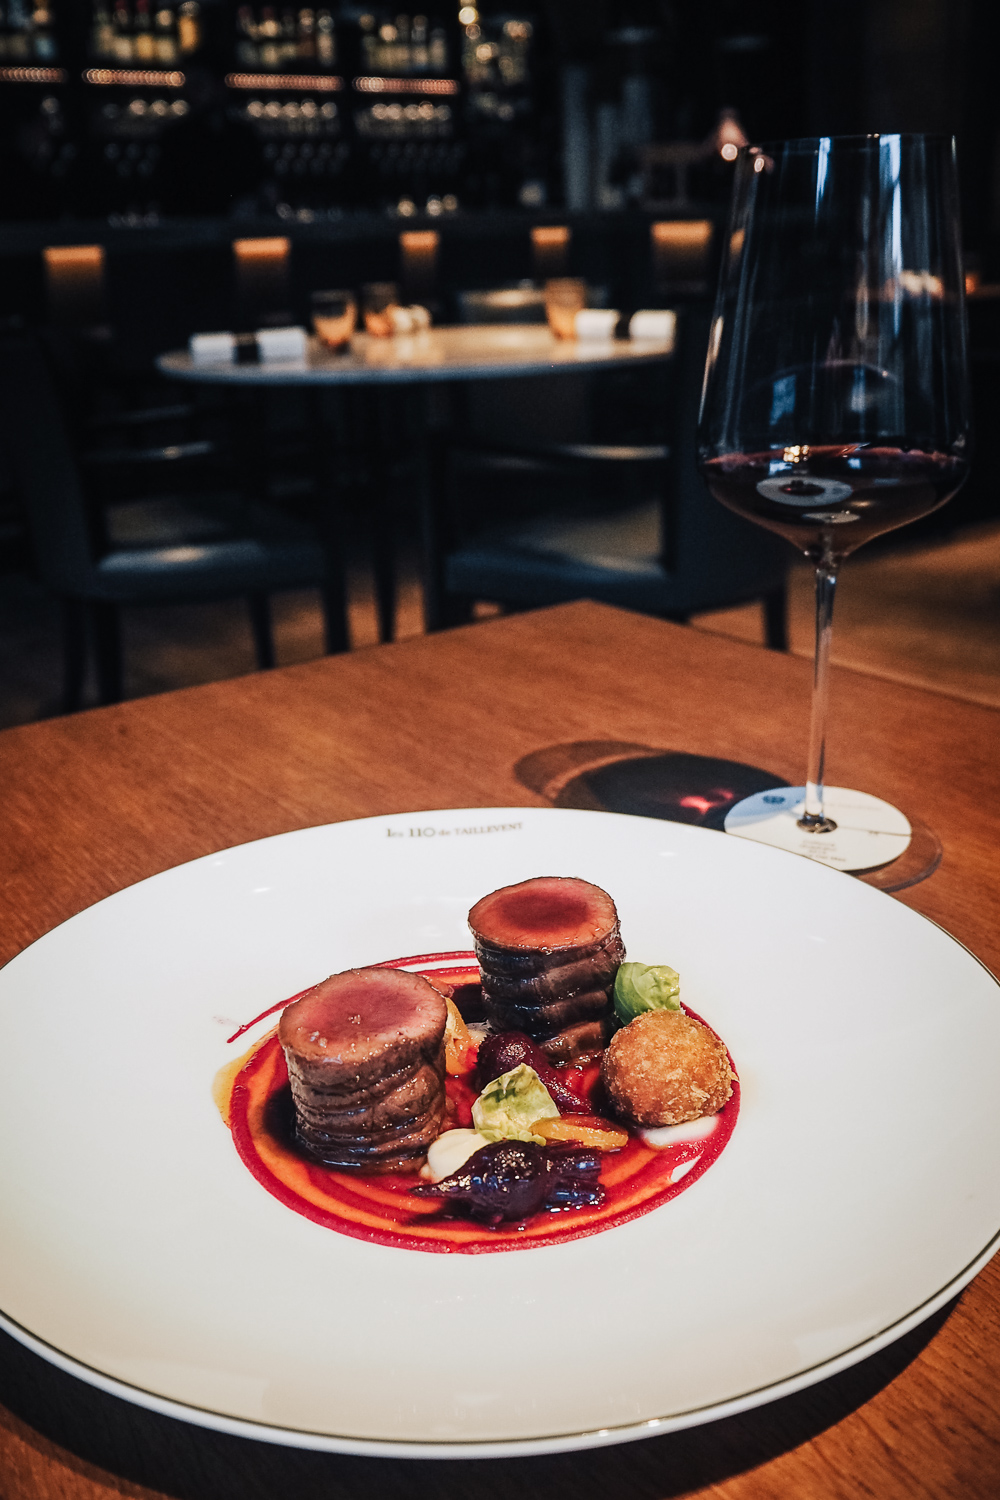 Lunch and wine pairing at Les 110 de Taillevent, a sophisticated and modern French restaurant on Cavendish Square in the heart of Marylebone, London.